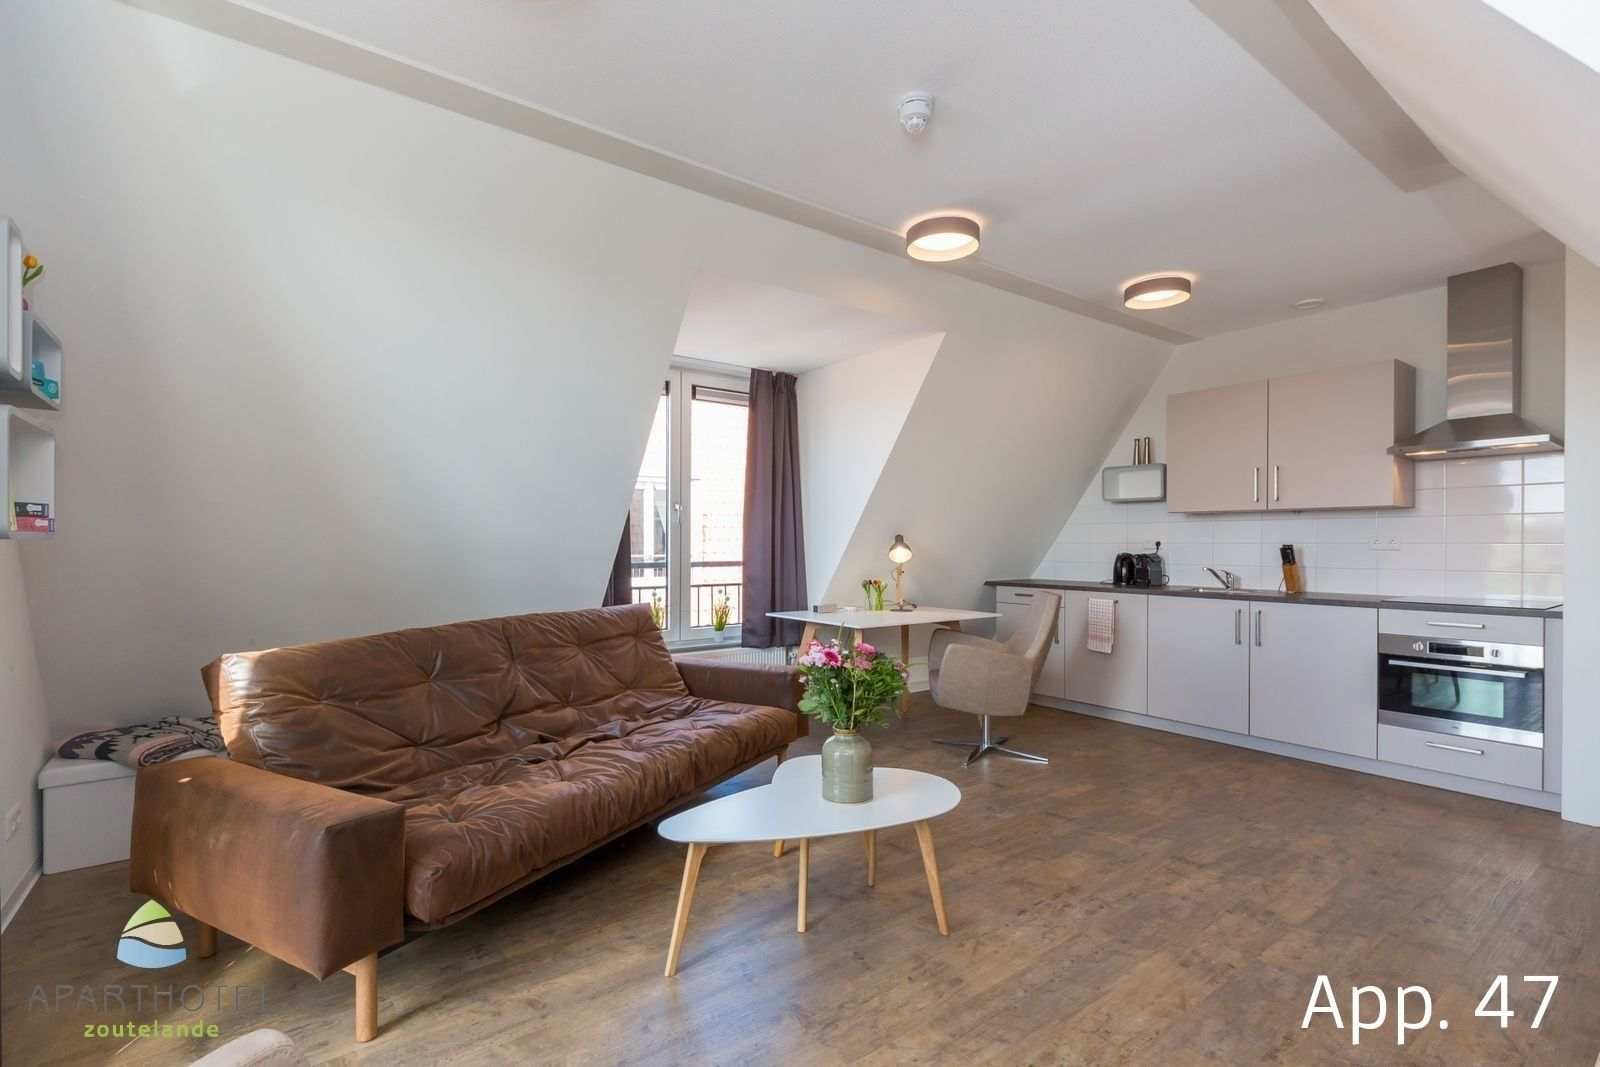 Luxuriöses Appartement für 5 Personen | Zoutelande